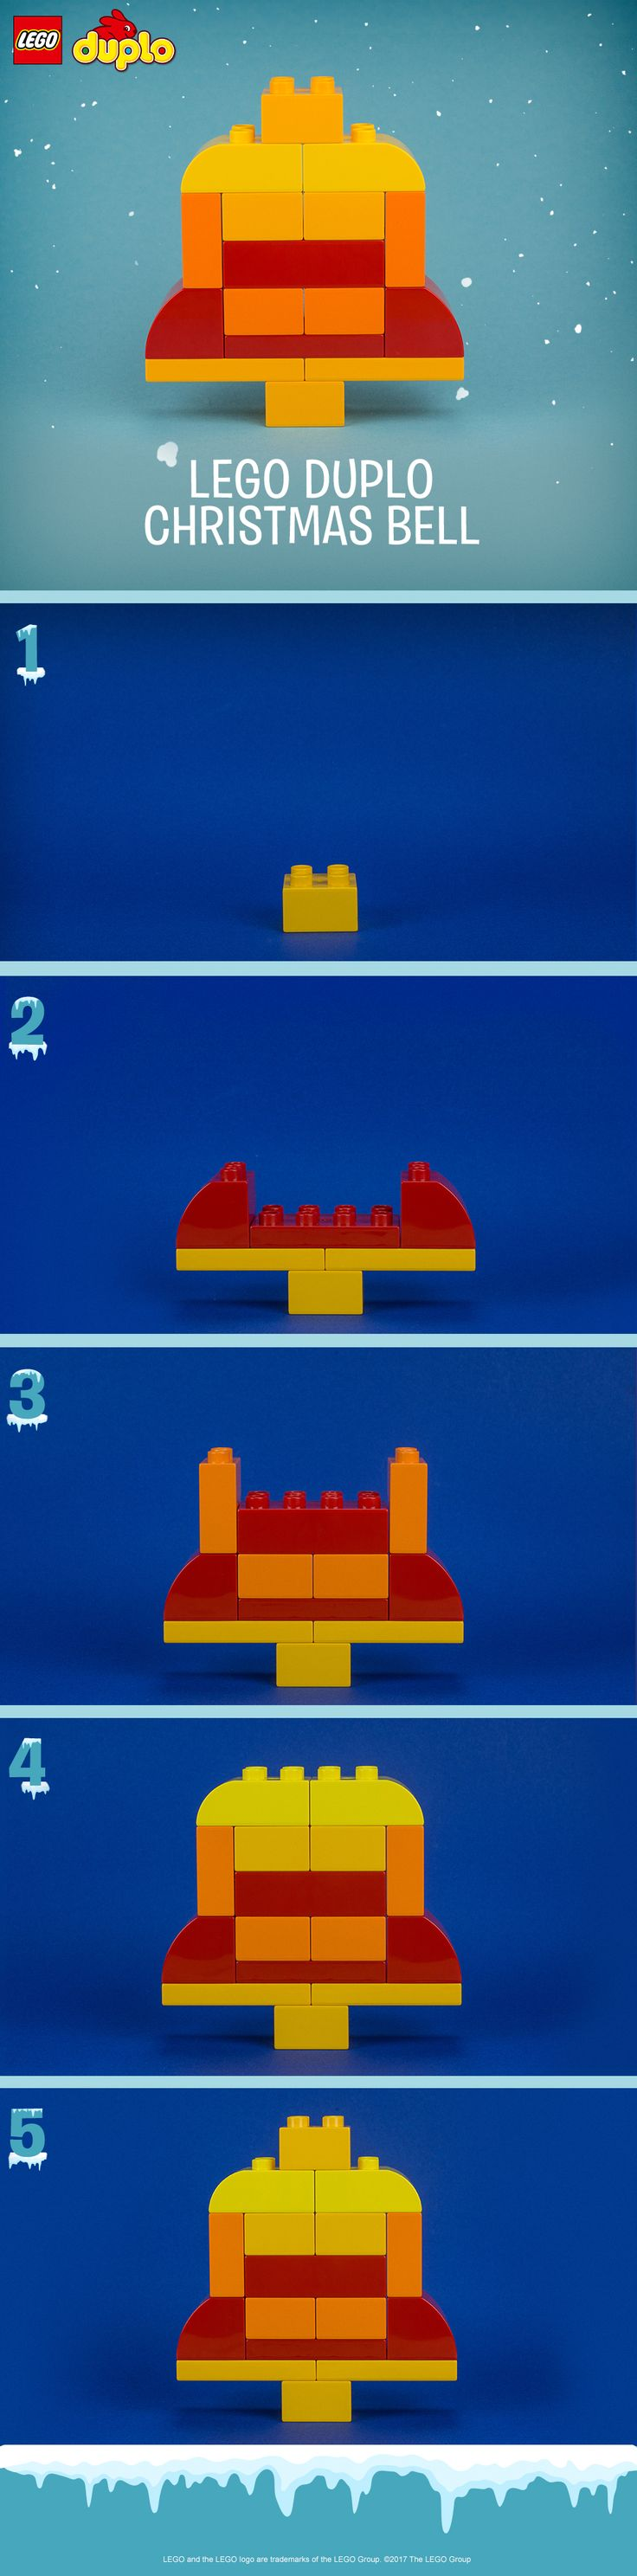 This Christmas bell is a fun and simple LEGO DUPLO building activity for kids during the holiday season. It makes a perfect decoration - or your toddler can take it apart and rebuild for endless festive fun. Follow the pattern, or use colorful bricks and encourage your child to be creative with their own design.  You can make this and many more holiday builds with the LEGO DUPLO All-in-One-Box-of-Fun. Click to buy.